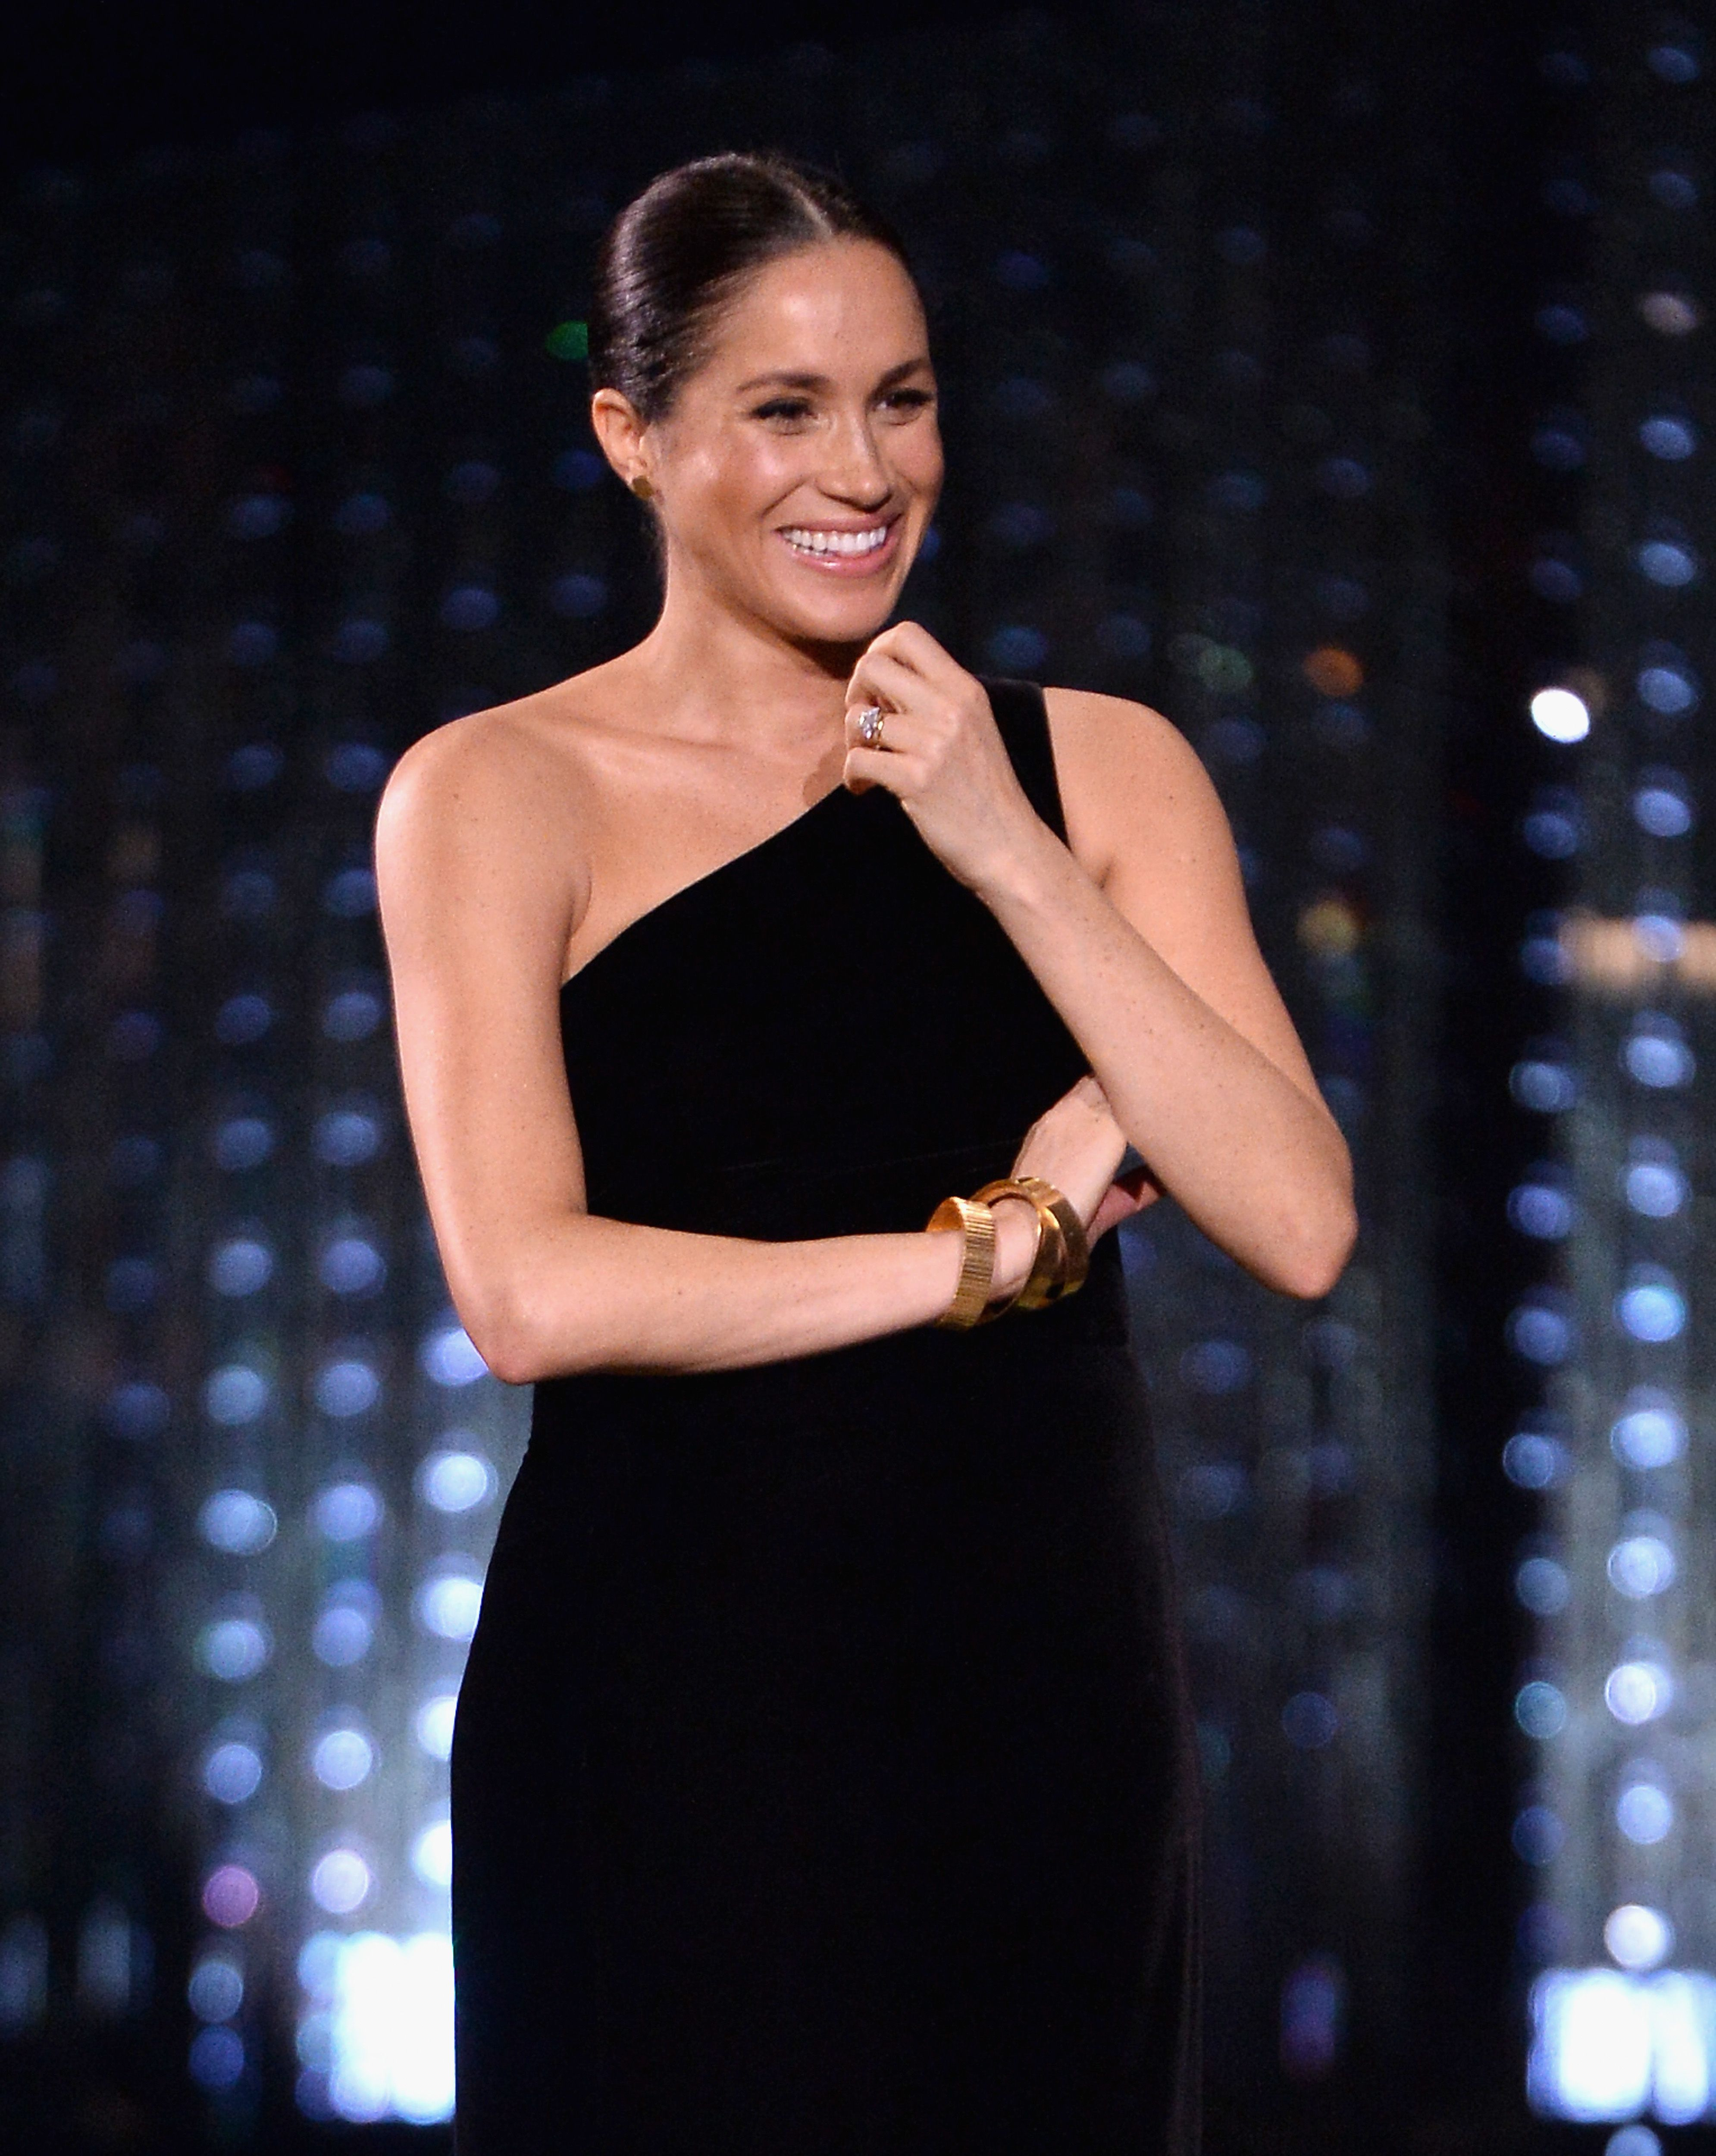 b25a96dfbd28 Meghan Markle Posed for a Gif Photo Booth Just Like Any Other Celeb